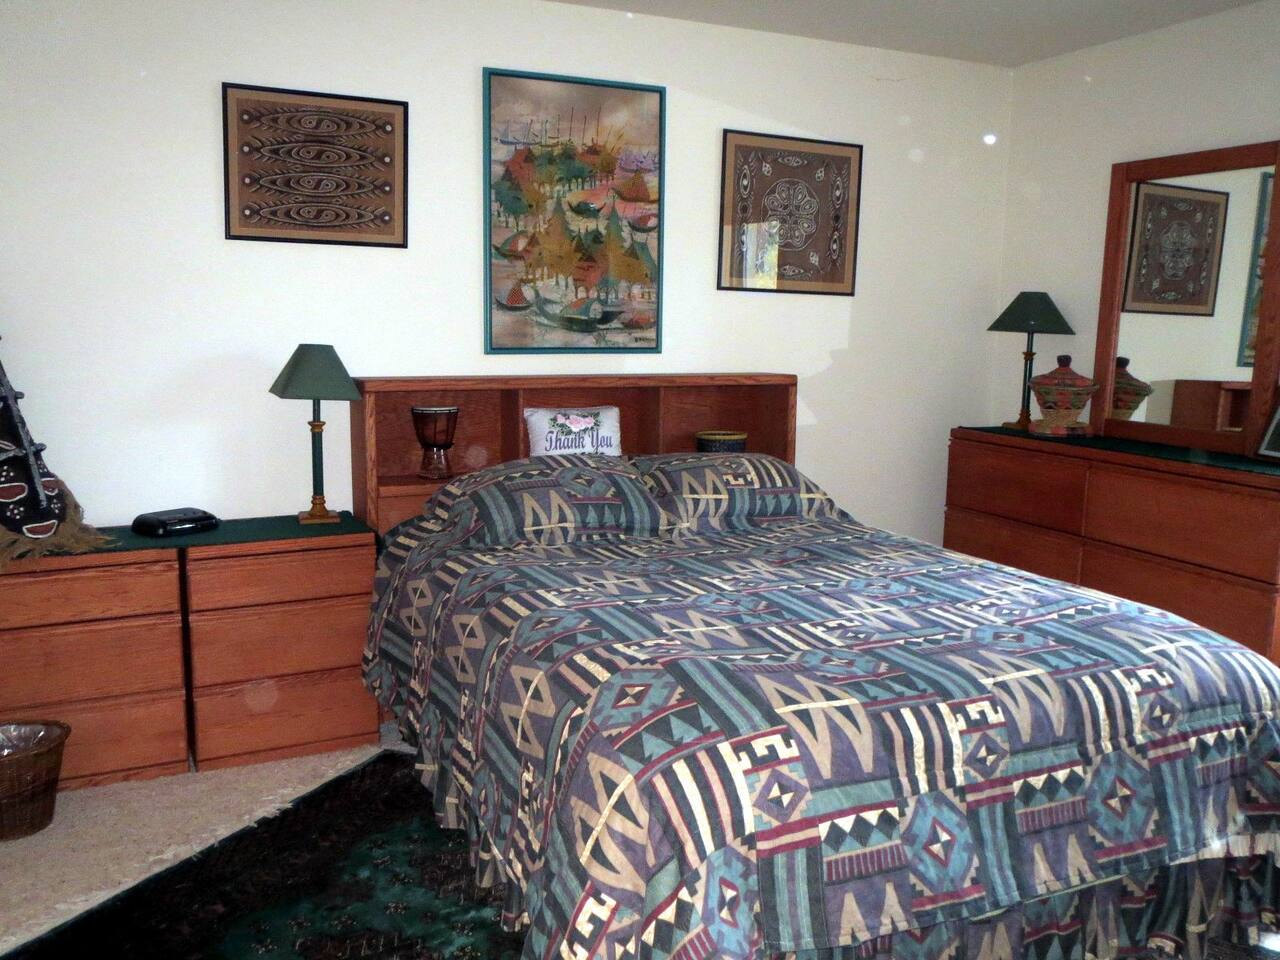 The Exotic Treasures Teal Room features a queen-sized bed. Located downstairs, it is the most private room.